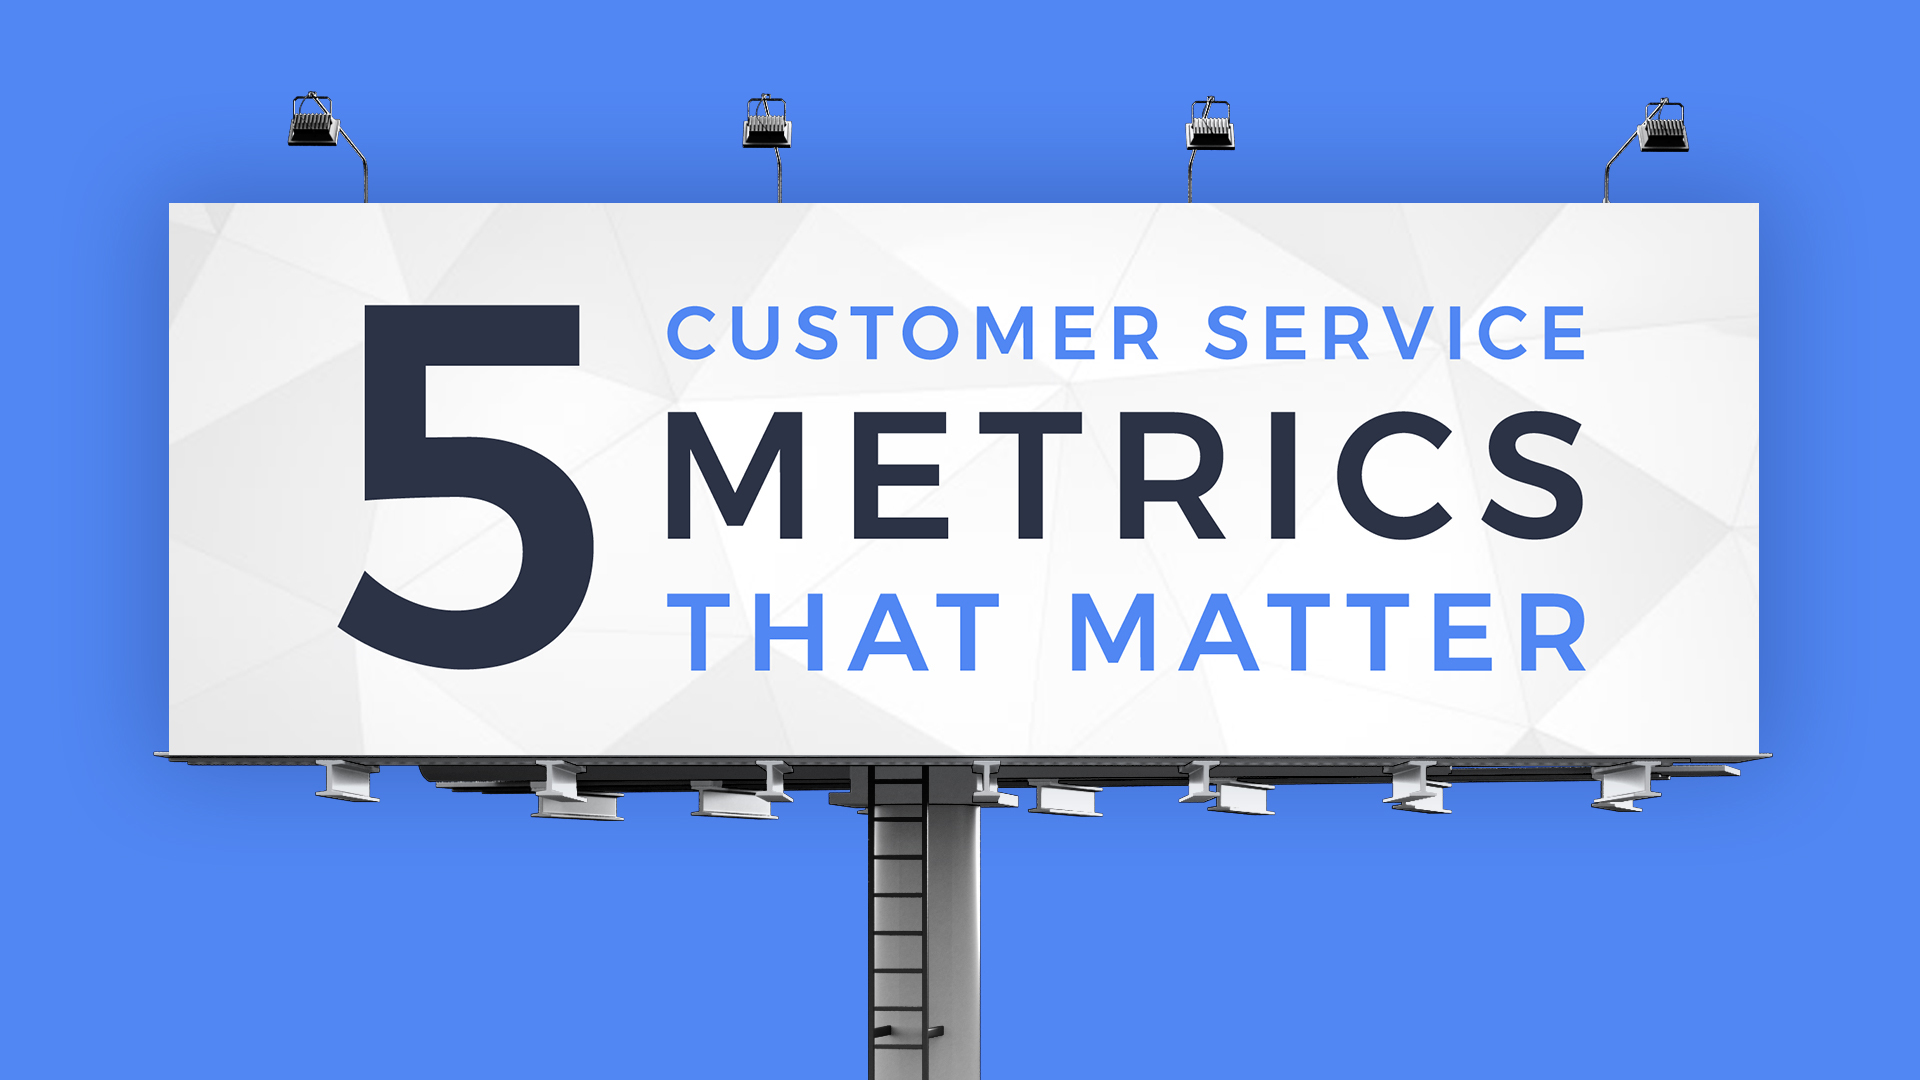 Your Customer Service Metrics Matter & Here's Why